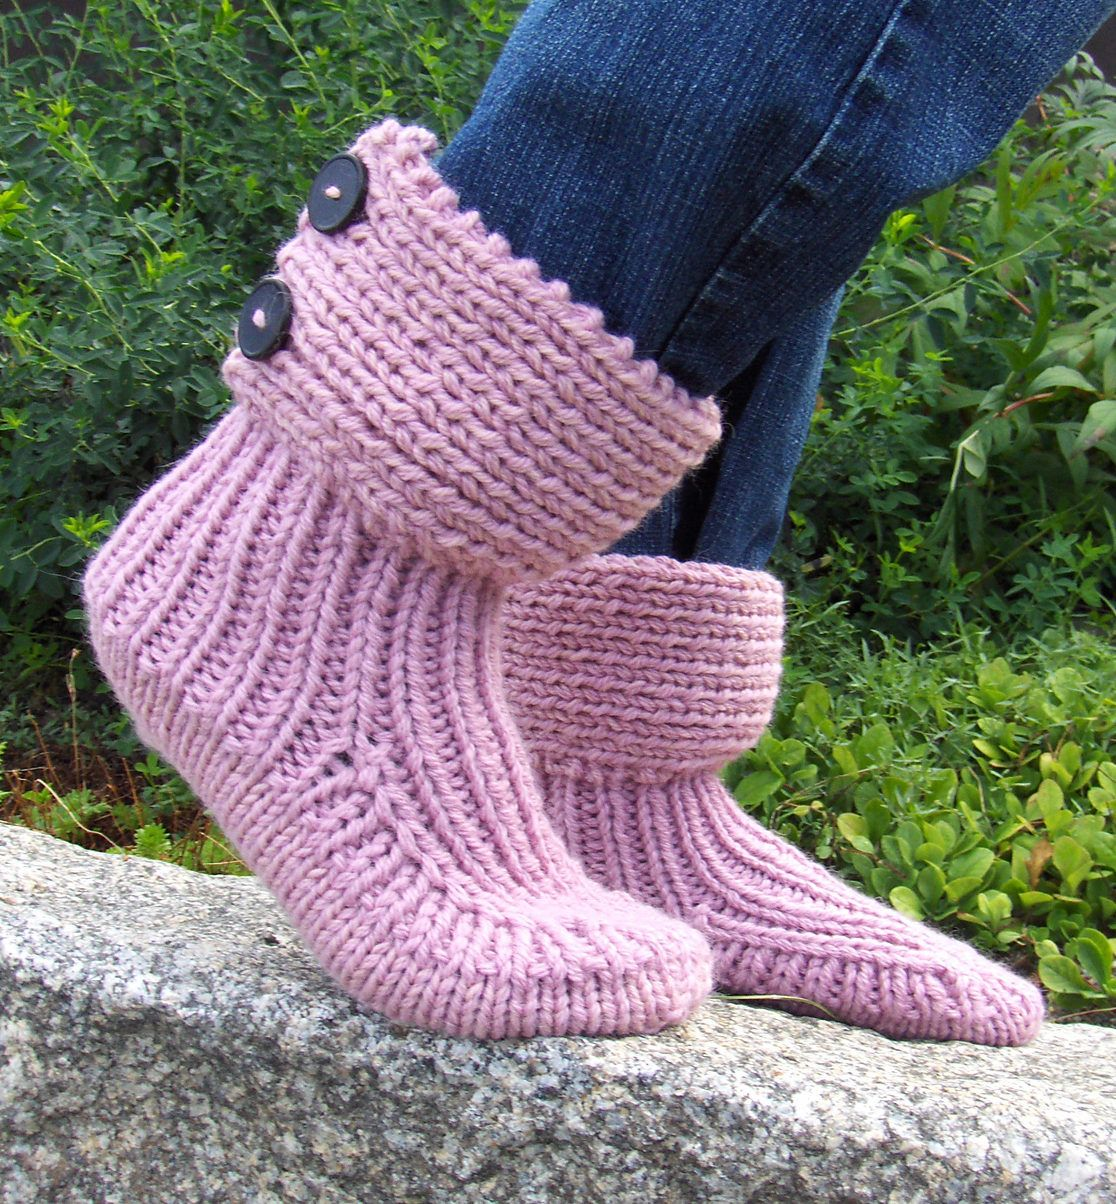 Easy Sock Knitting Pattern Free : Free knitting pattern for moon socks slipper boots easy